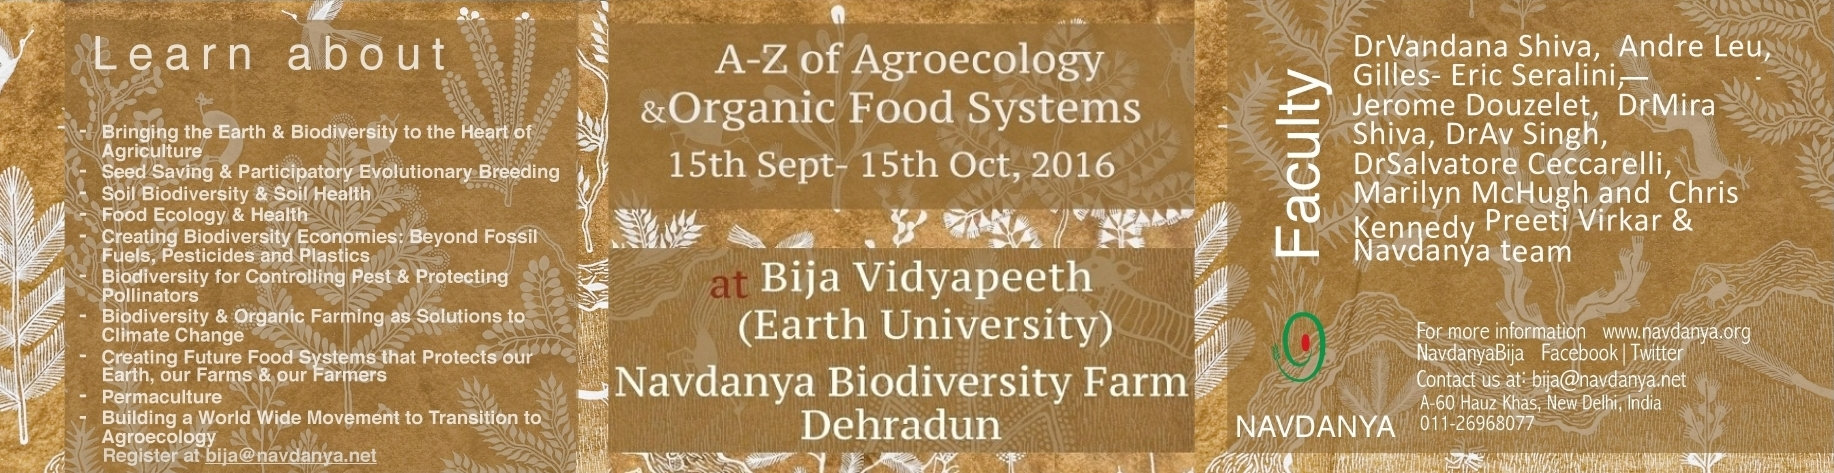 A-Z OF AGROECOLOGY